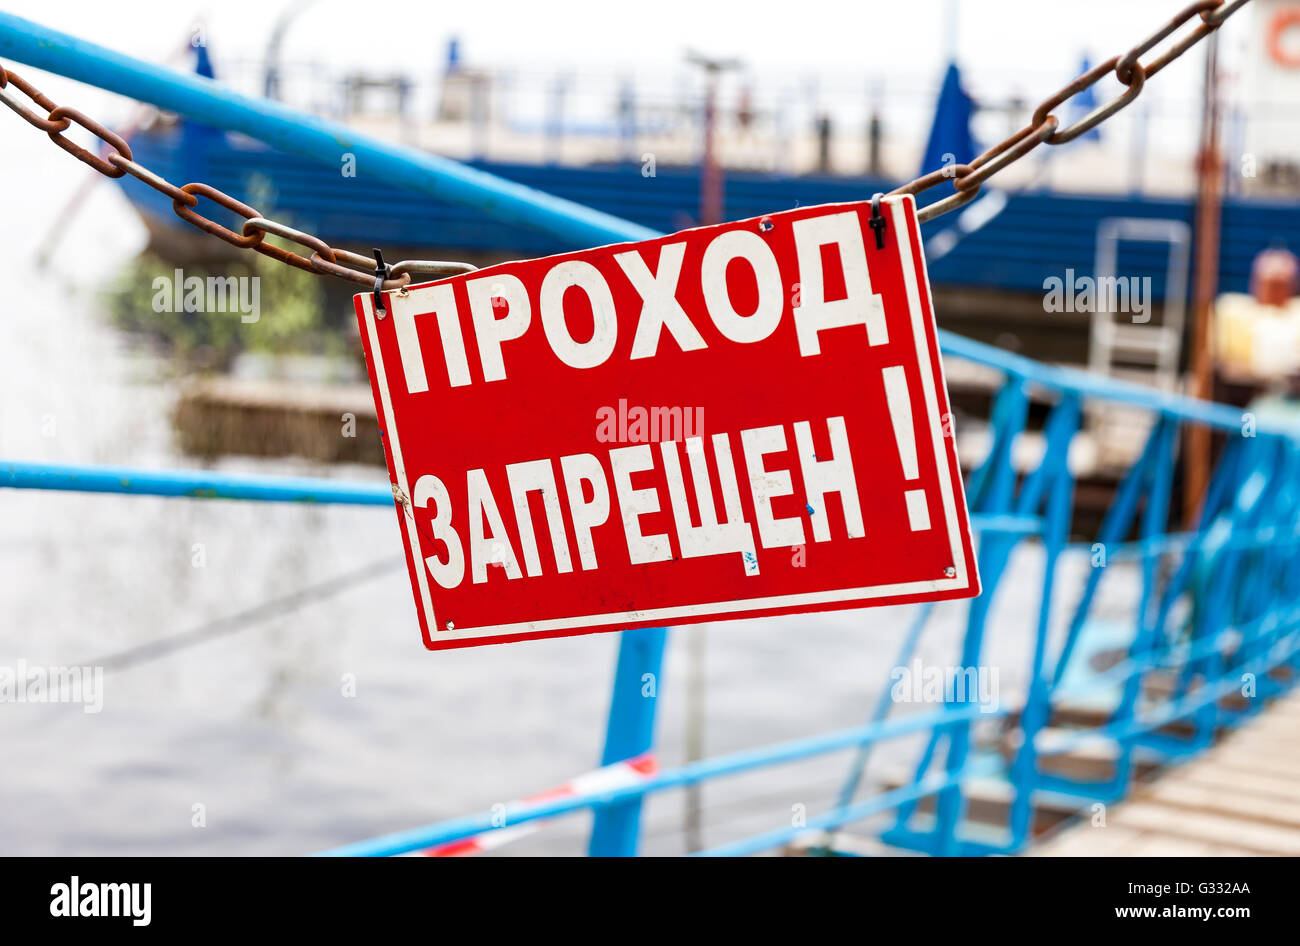 Notice board with text in Russian: 'No entry' - Stock Image